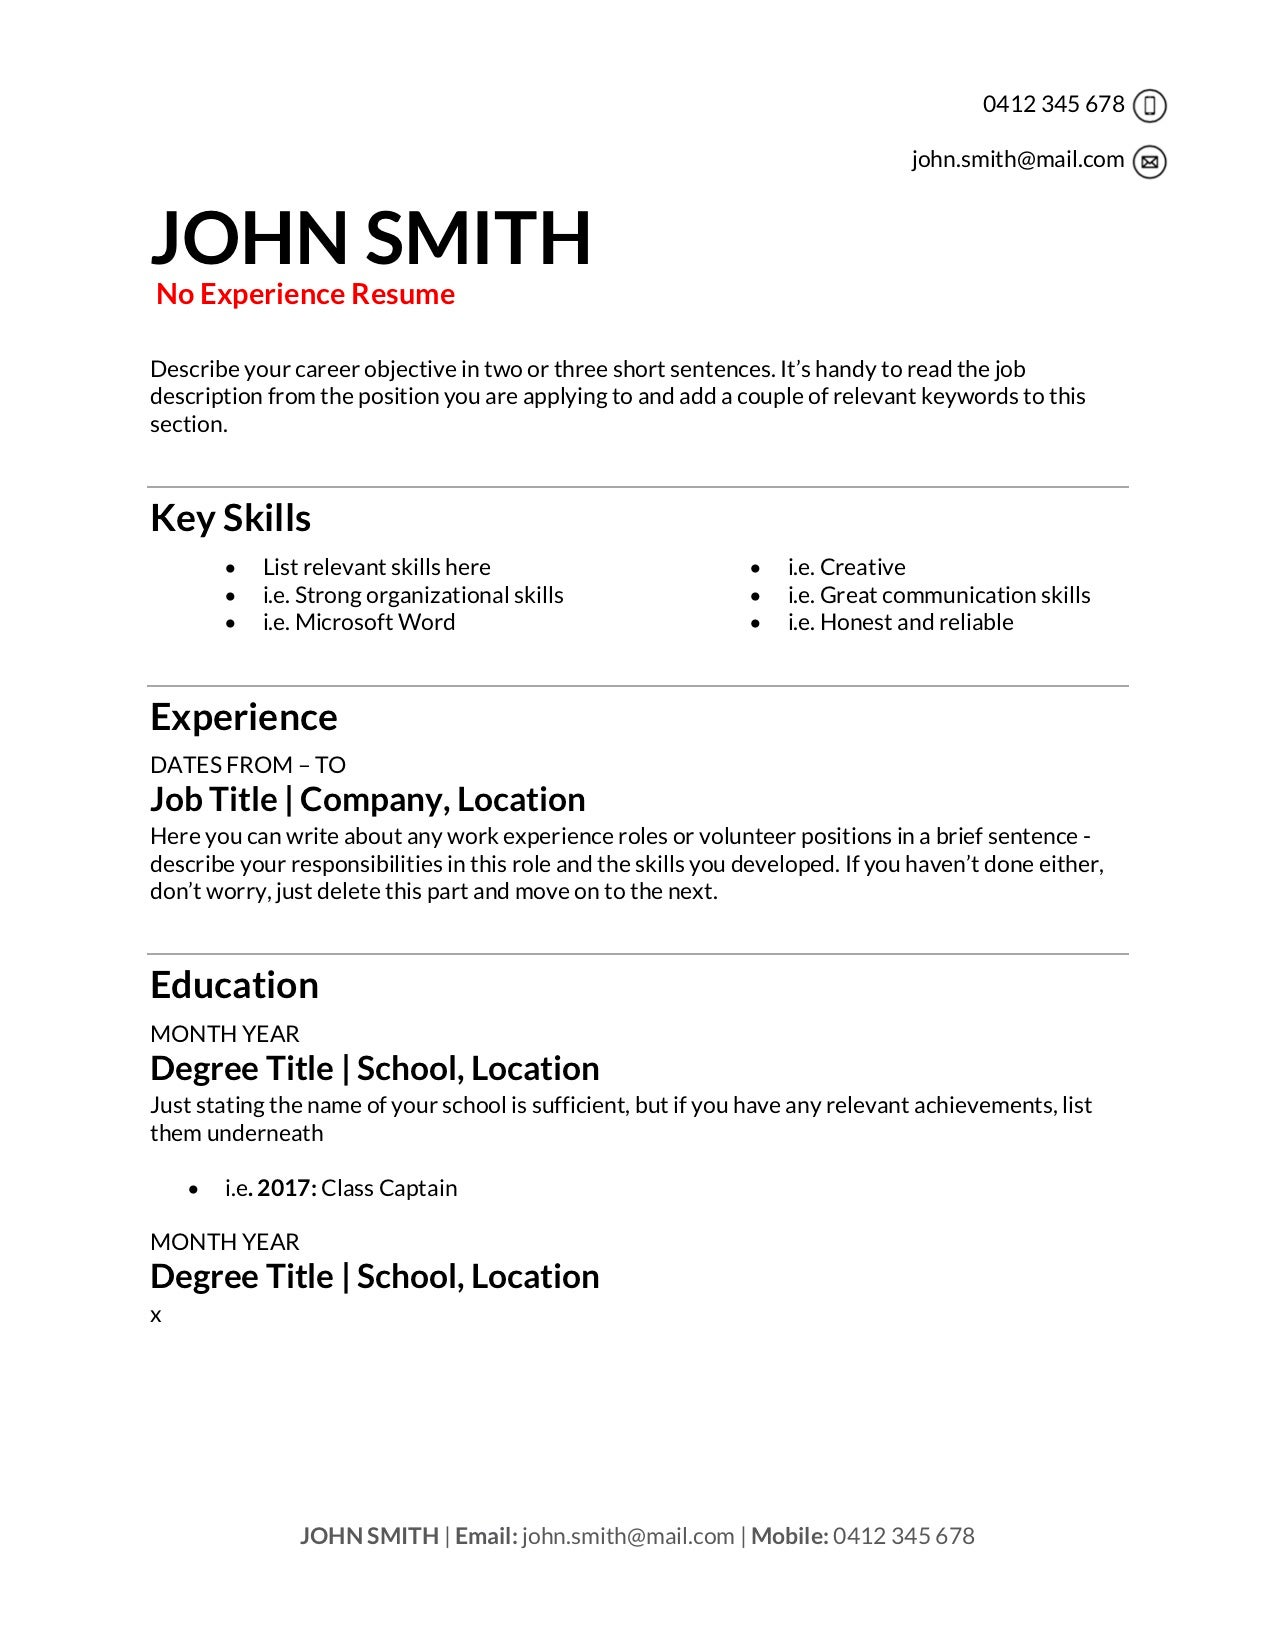 free resume templates to write in training au template for someone with no experience Resume Resume Template For Someone With No Experience